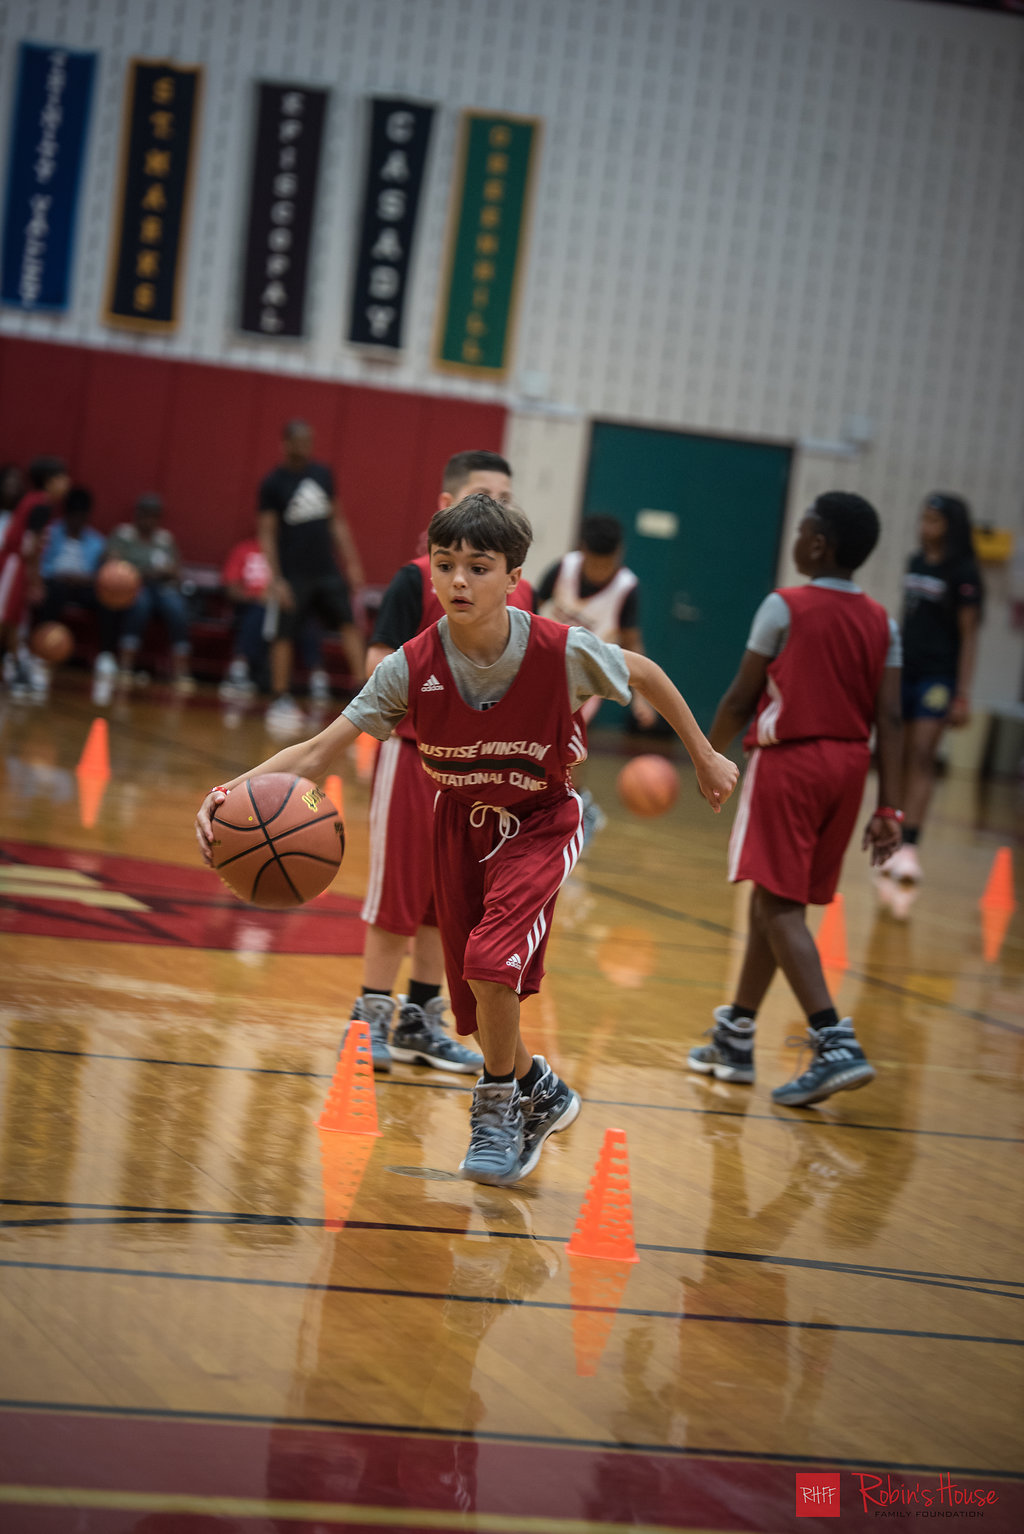 rhff_basketball_clinic_sunday-24.jpg